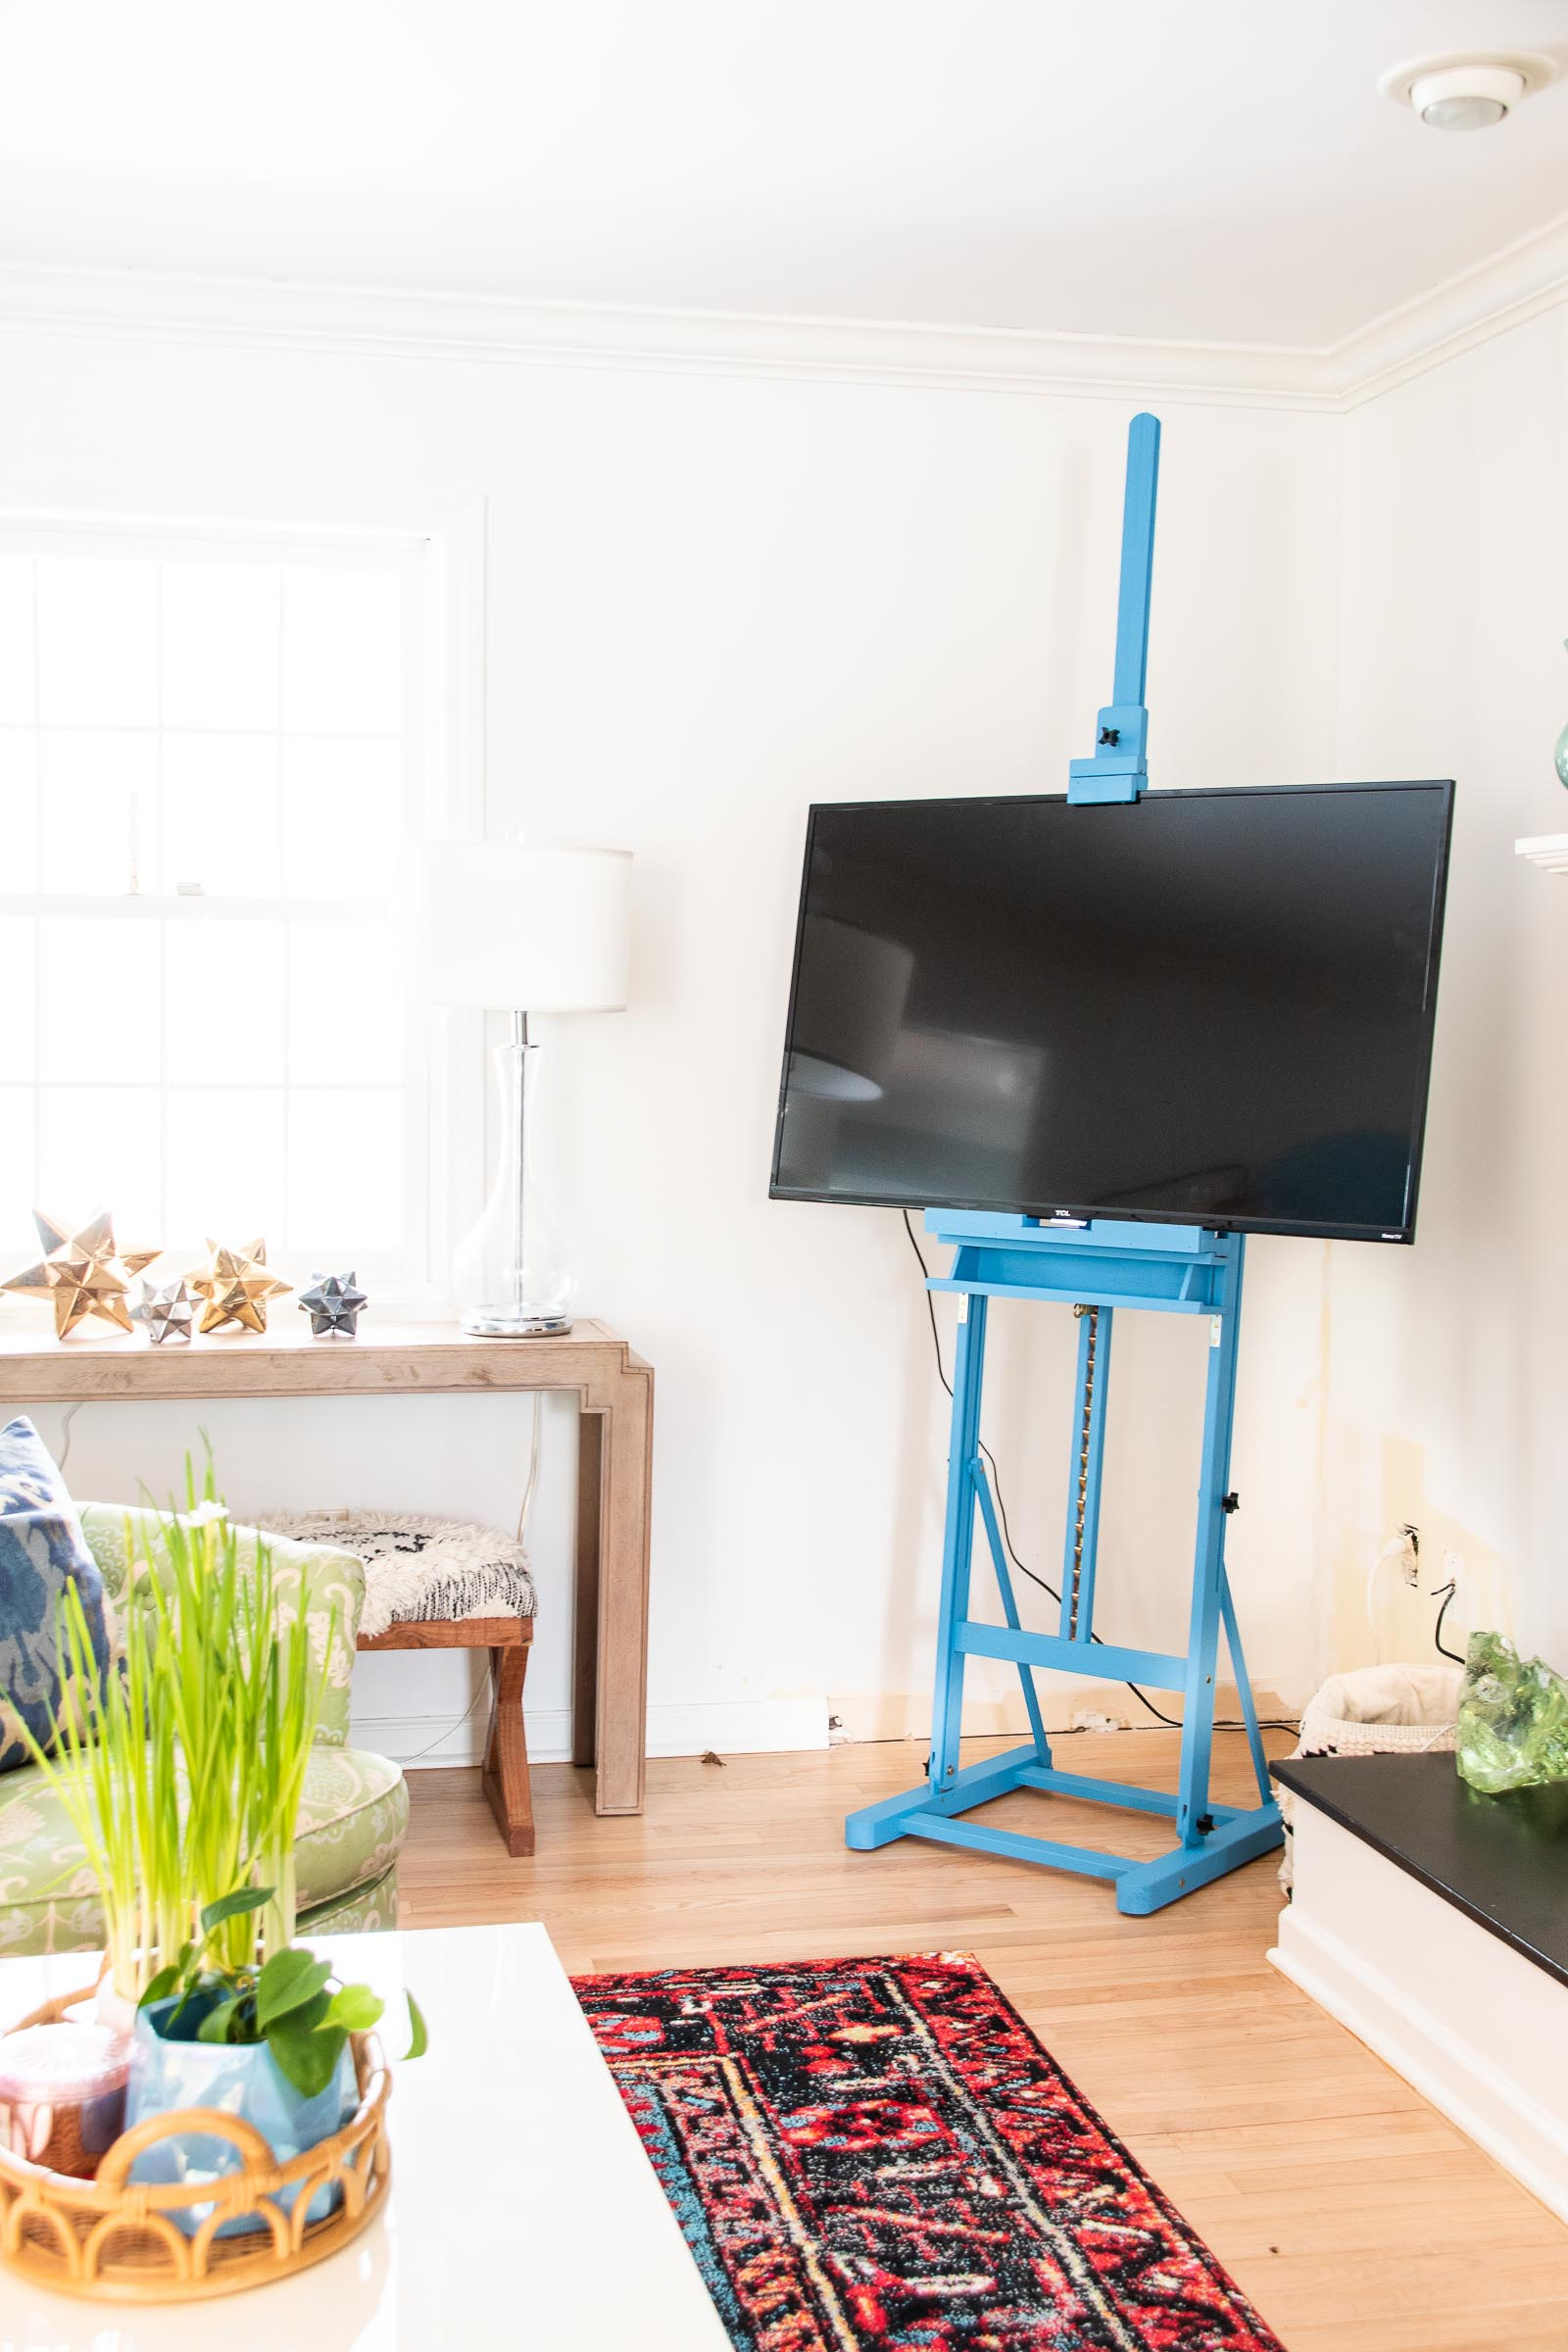 retrofitting a TV easel